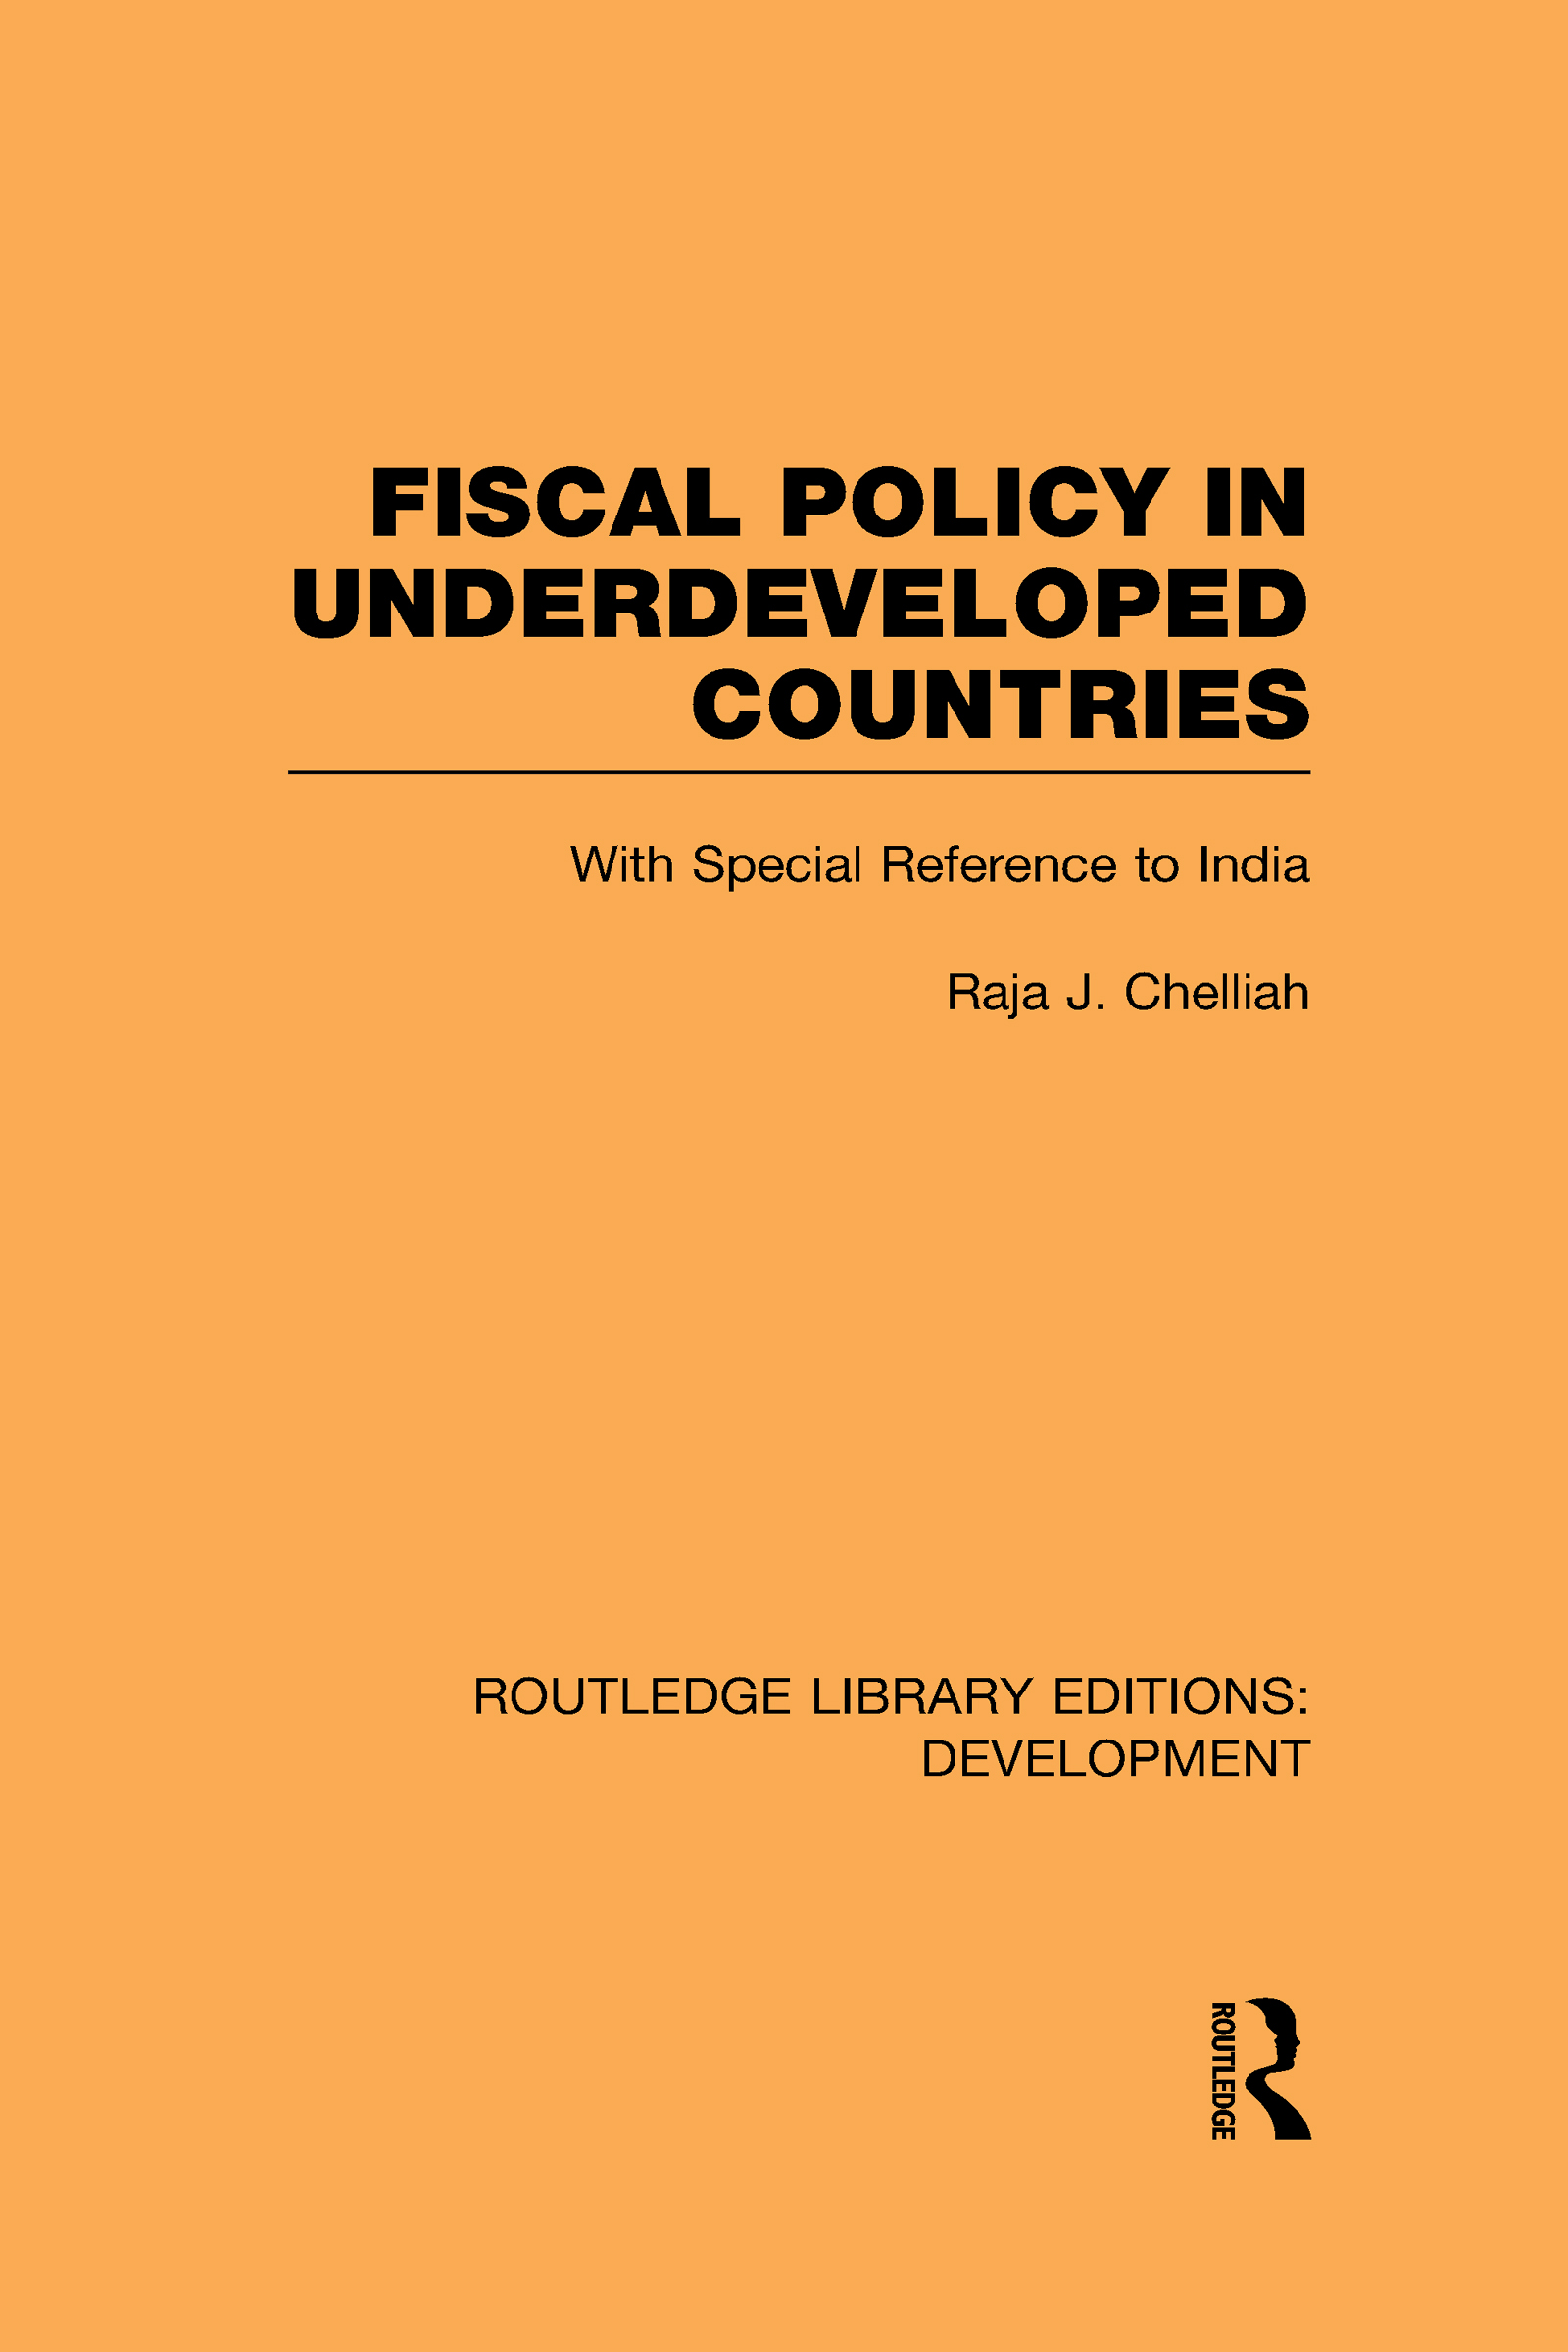 Fiscal Policy in Underdeveloped Countries